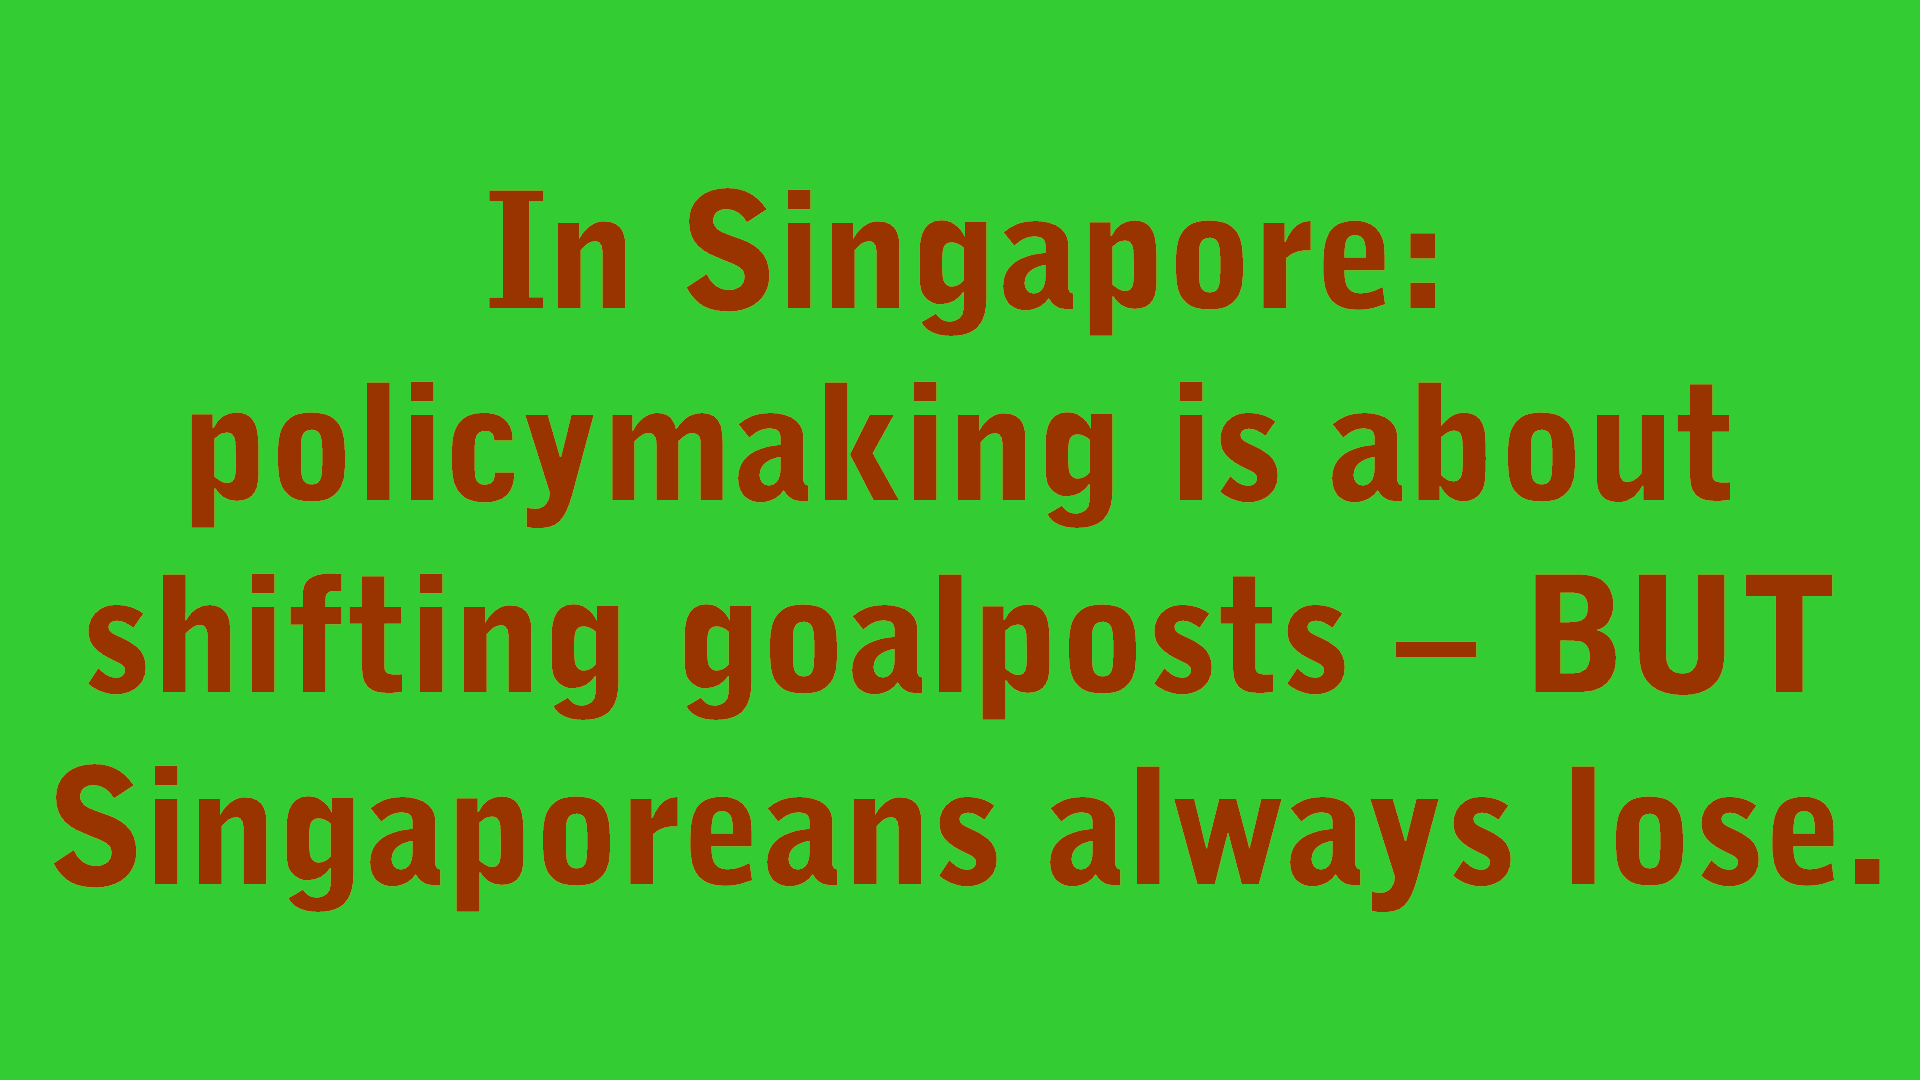 Policymaking in Singapore is about shifting goalposts